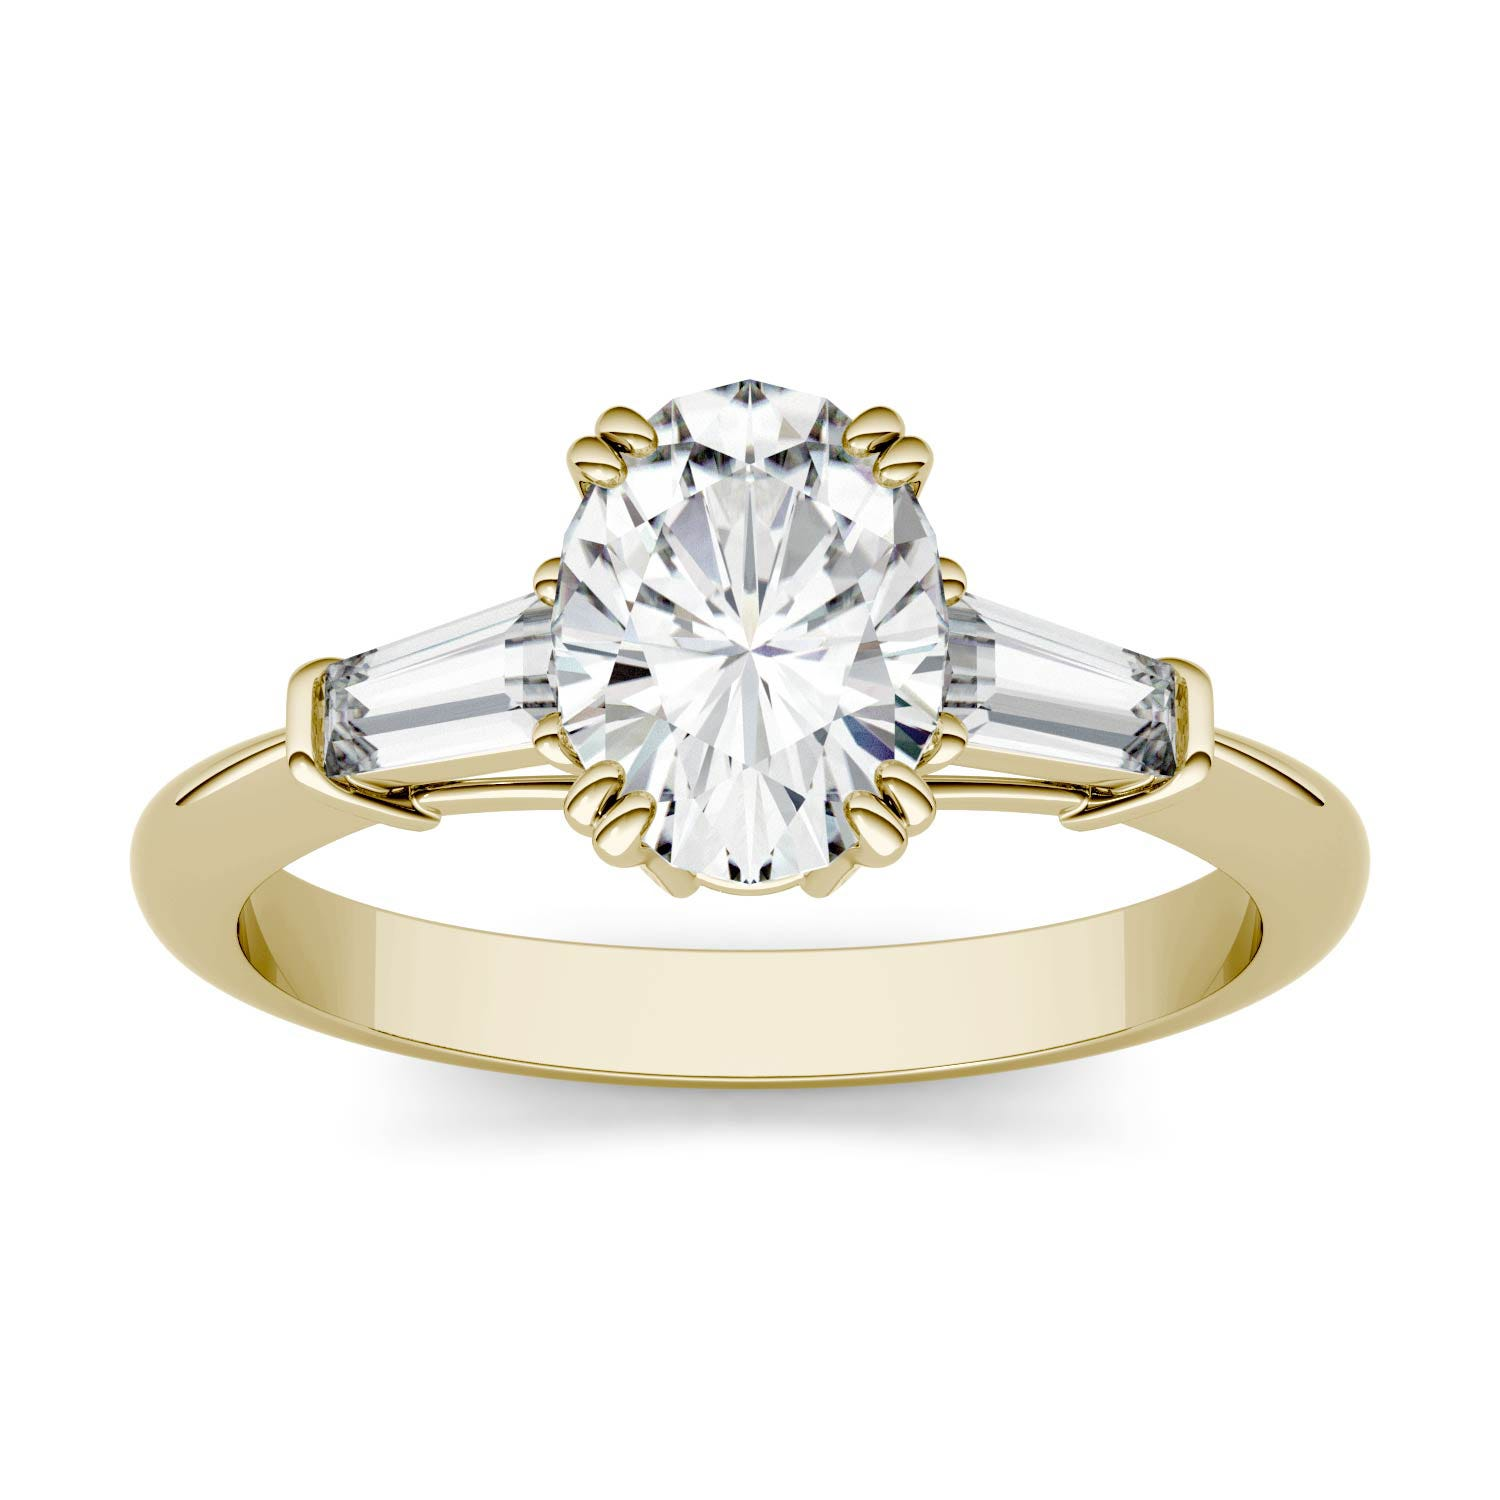 Oval 1.33cttw DEW Moissanite Three Stone Engagement Ring in 14K Yellow Gold 557503